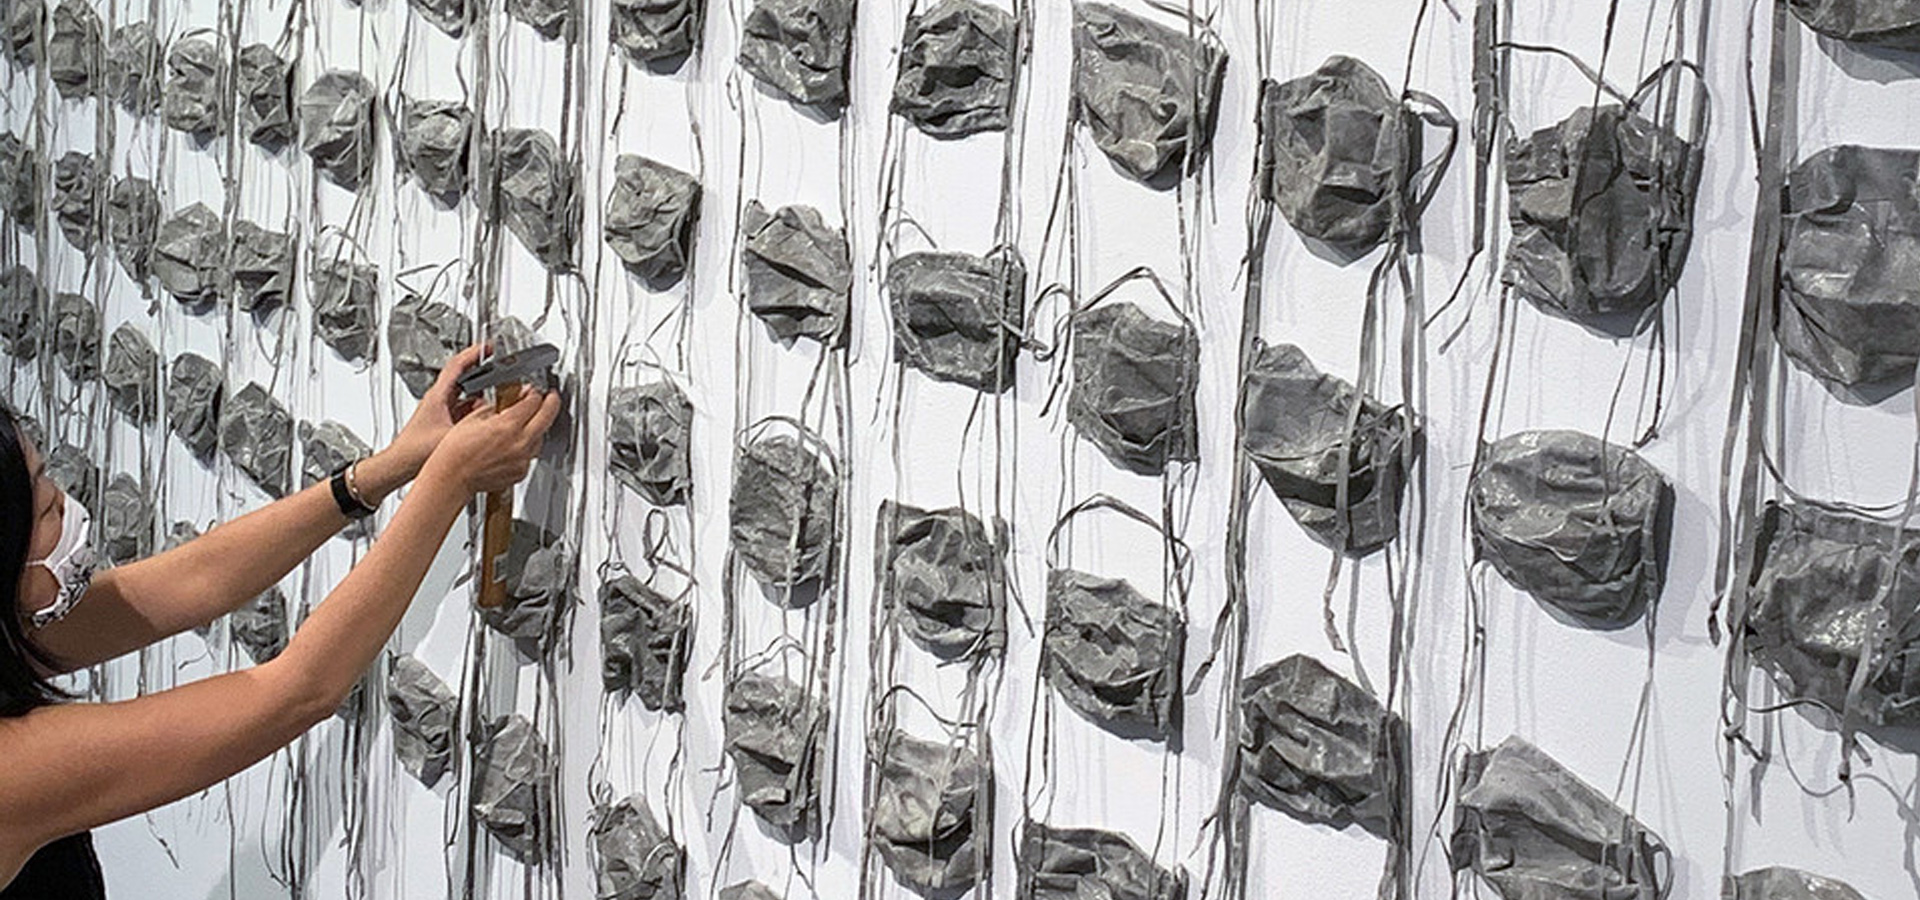 Rows of concrete surgical face masks mounted on a wall.